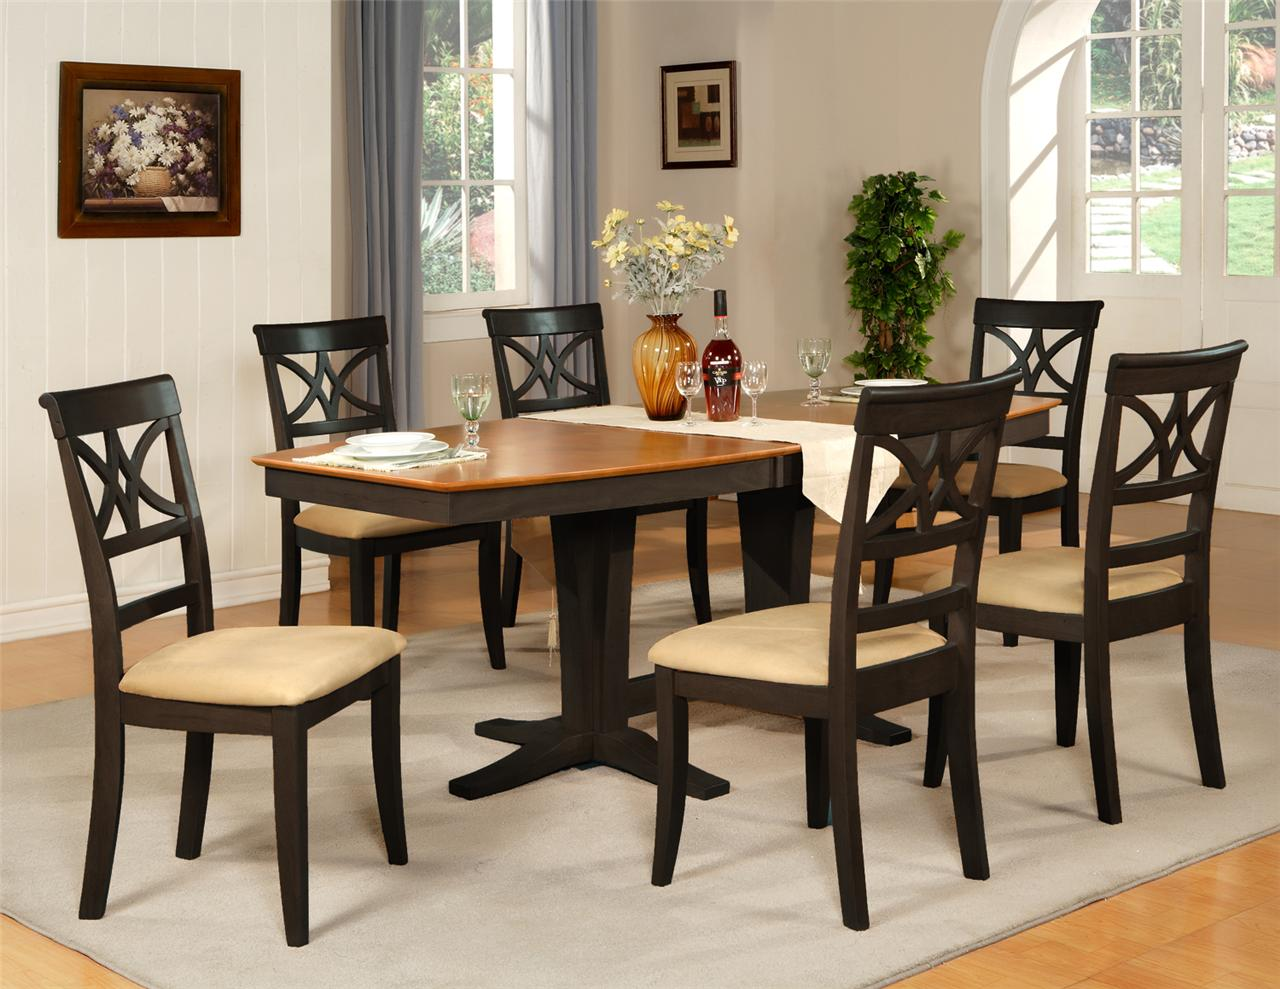 black dining room chairs - Colorful Dining Room Tables